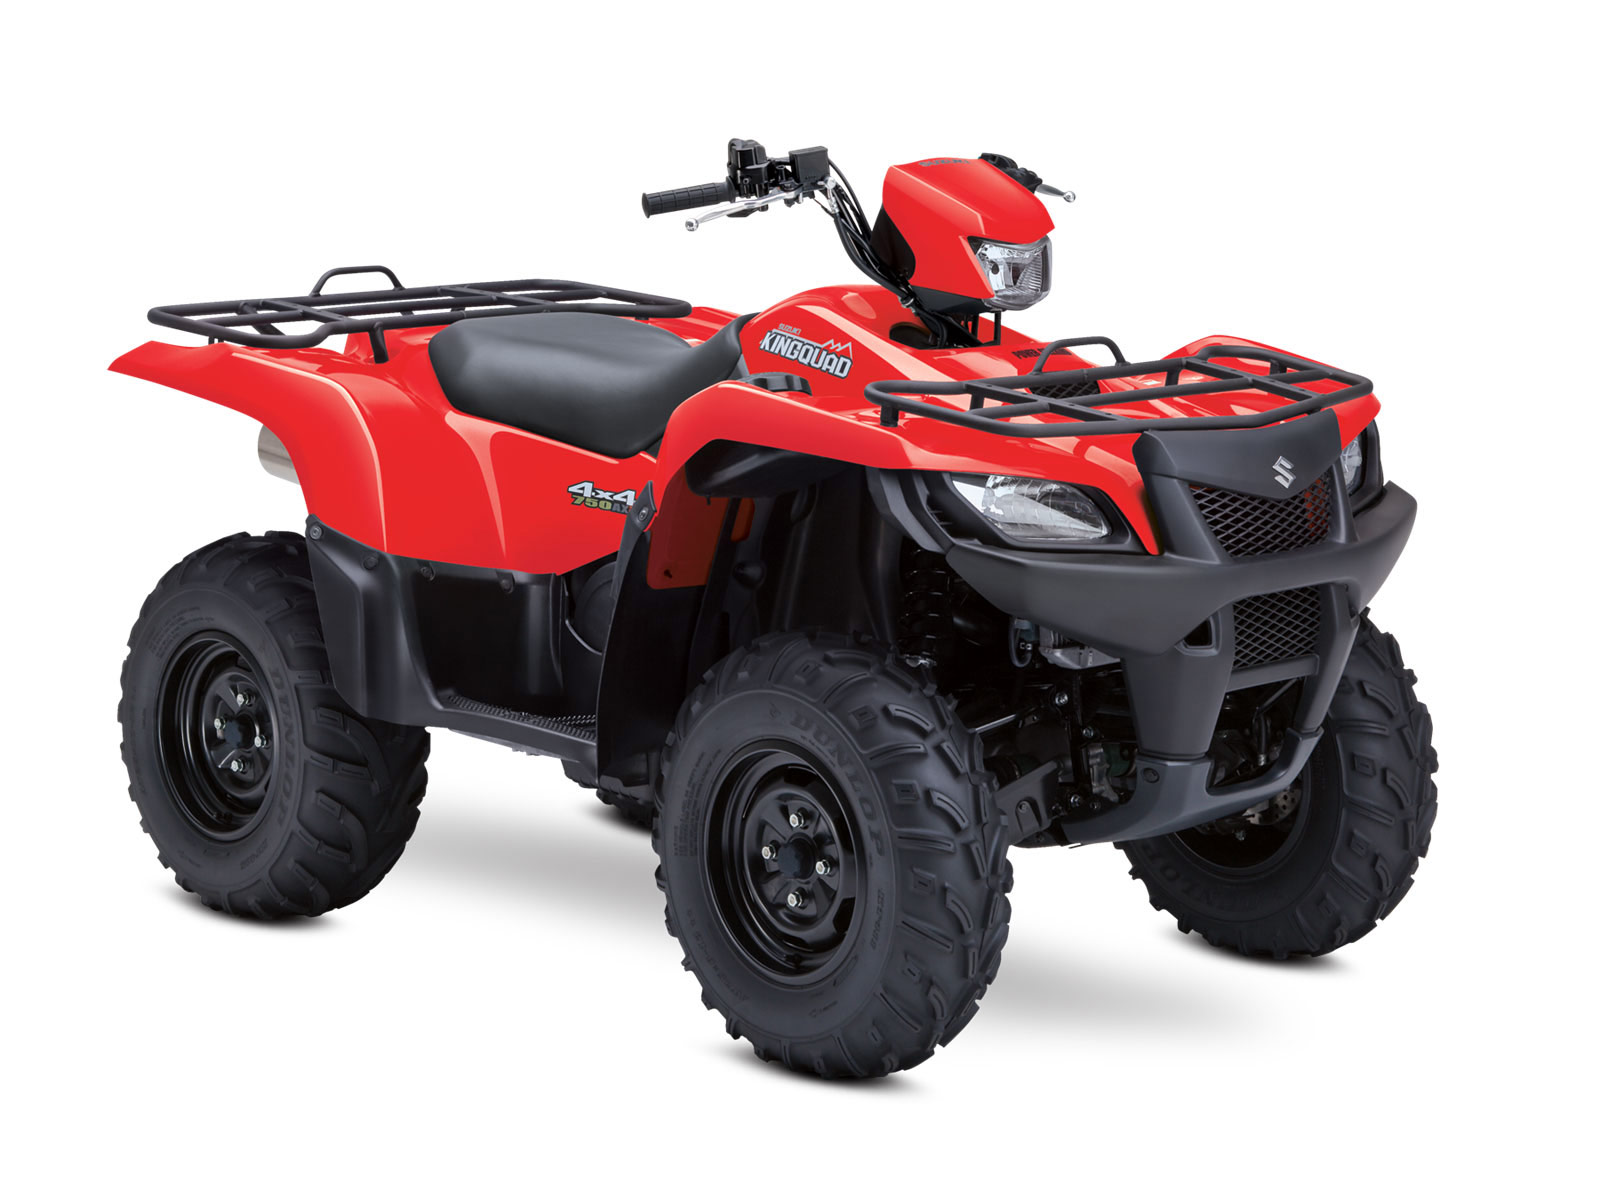 Suzuki kingquad photo - 3